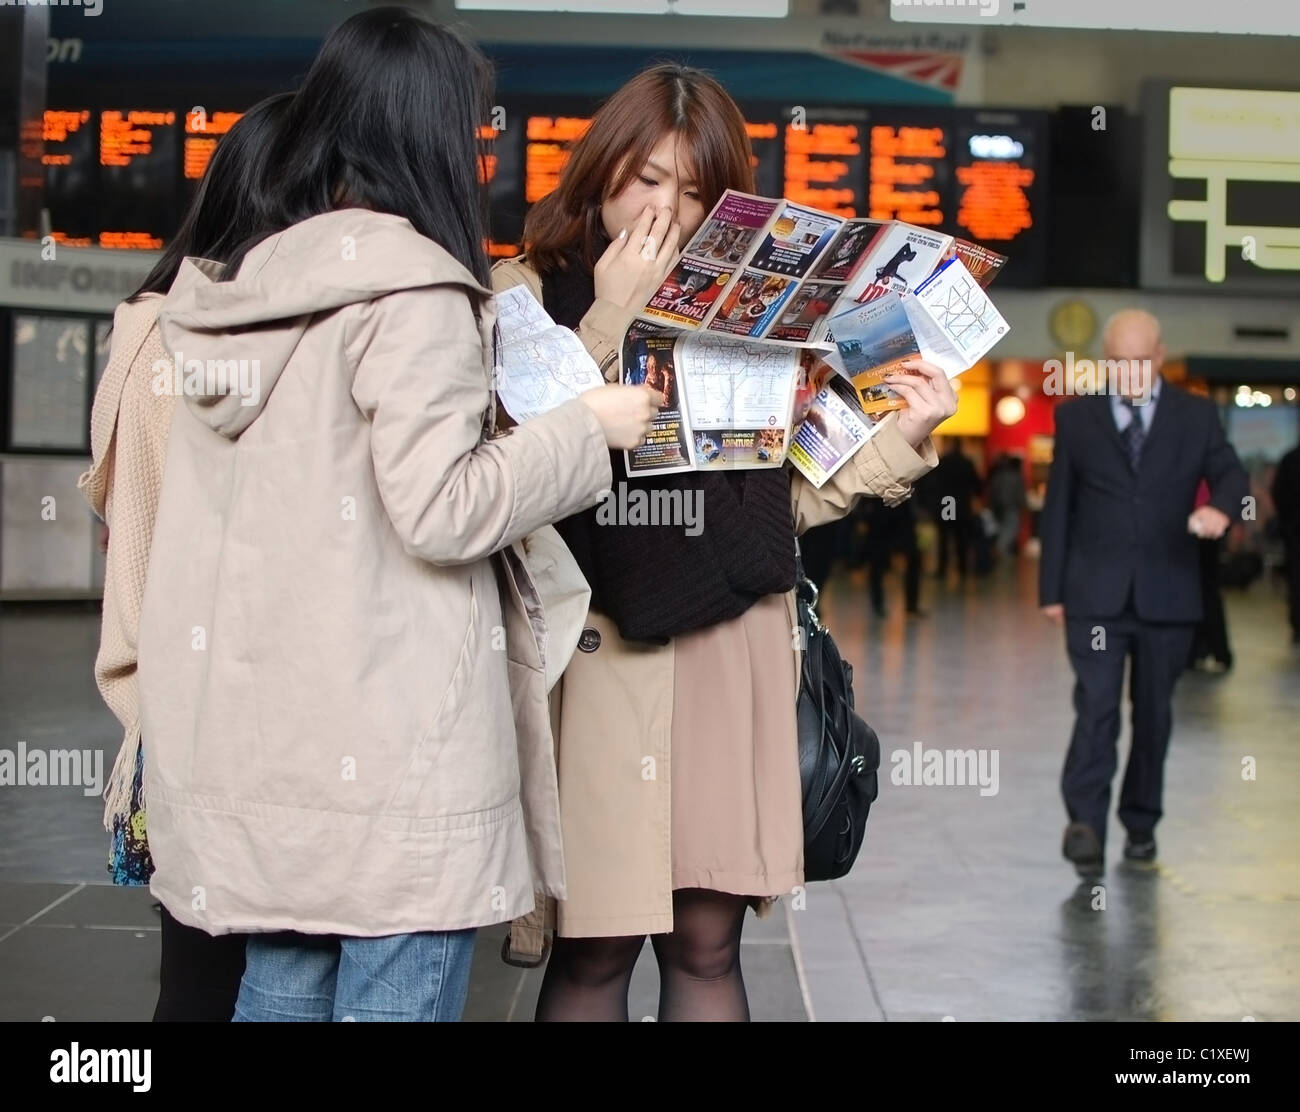 Tourists browsing a map in London Euston station - Stock Image